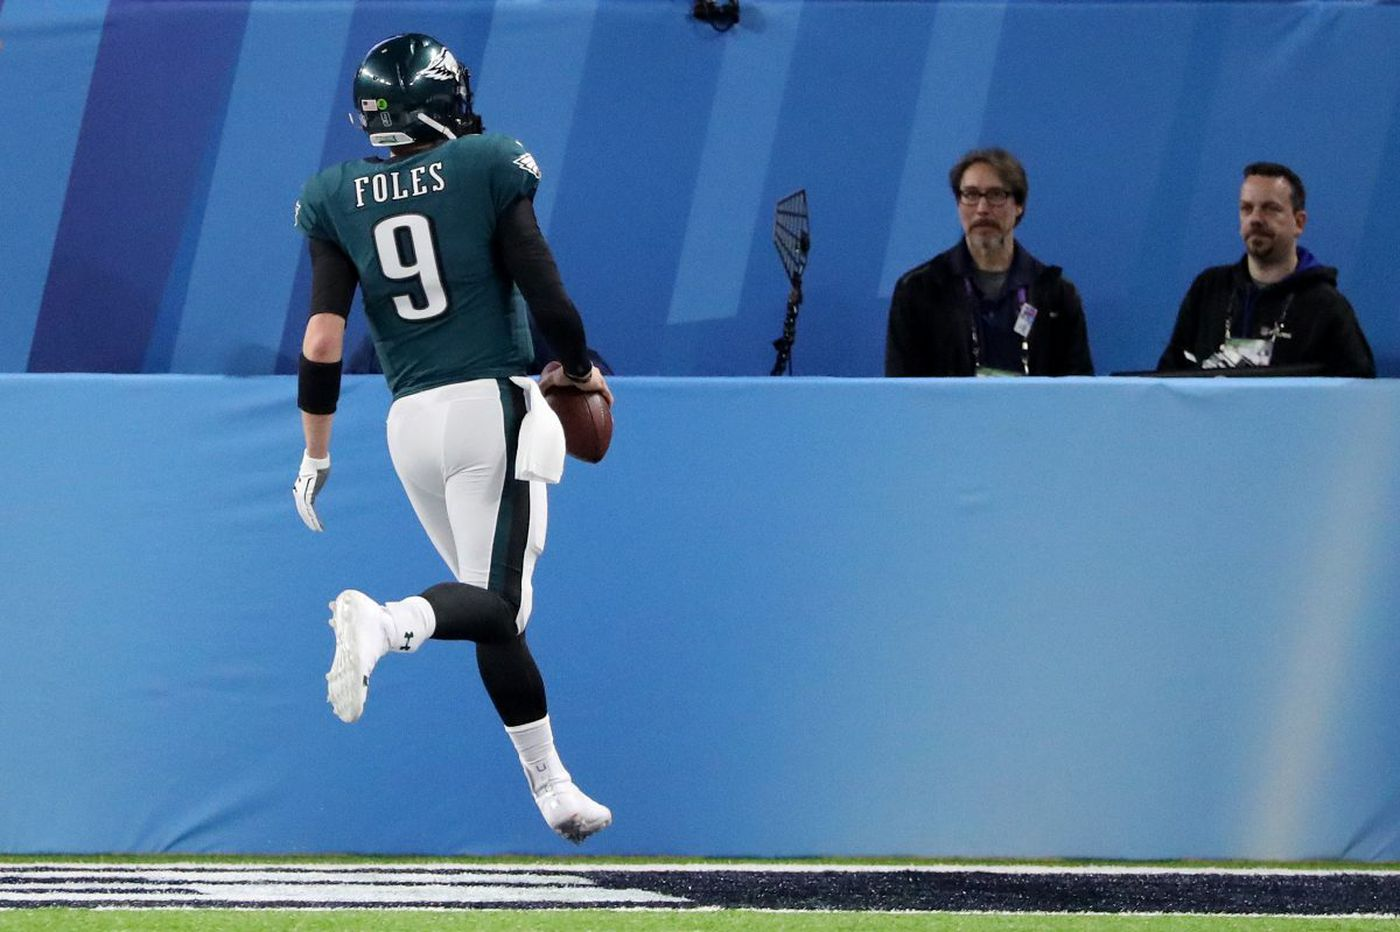 Nick Foles' Super Bowl trick-play touchdown catch was one for the ages